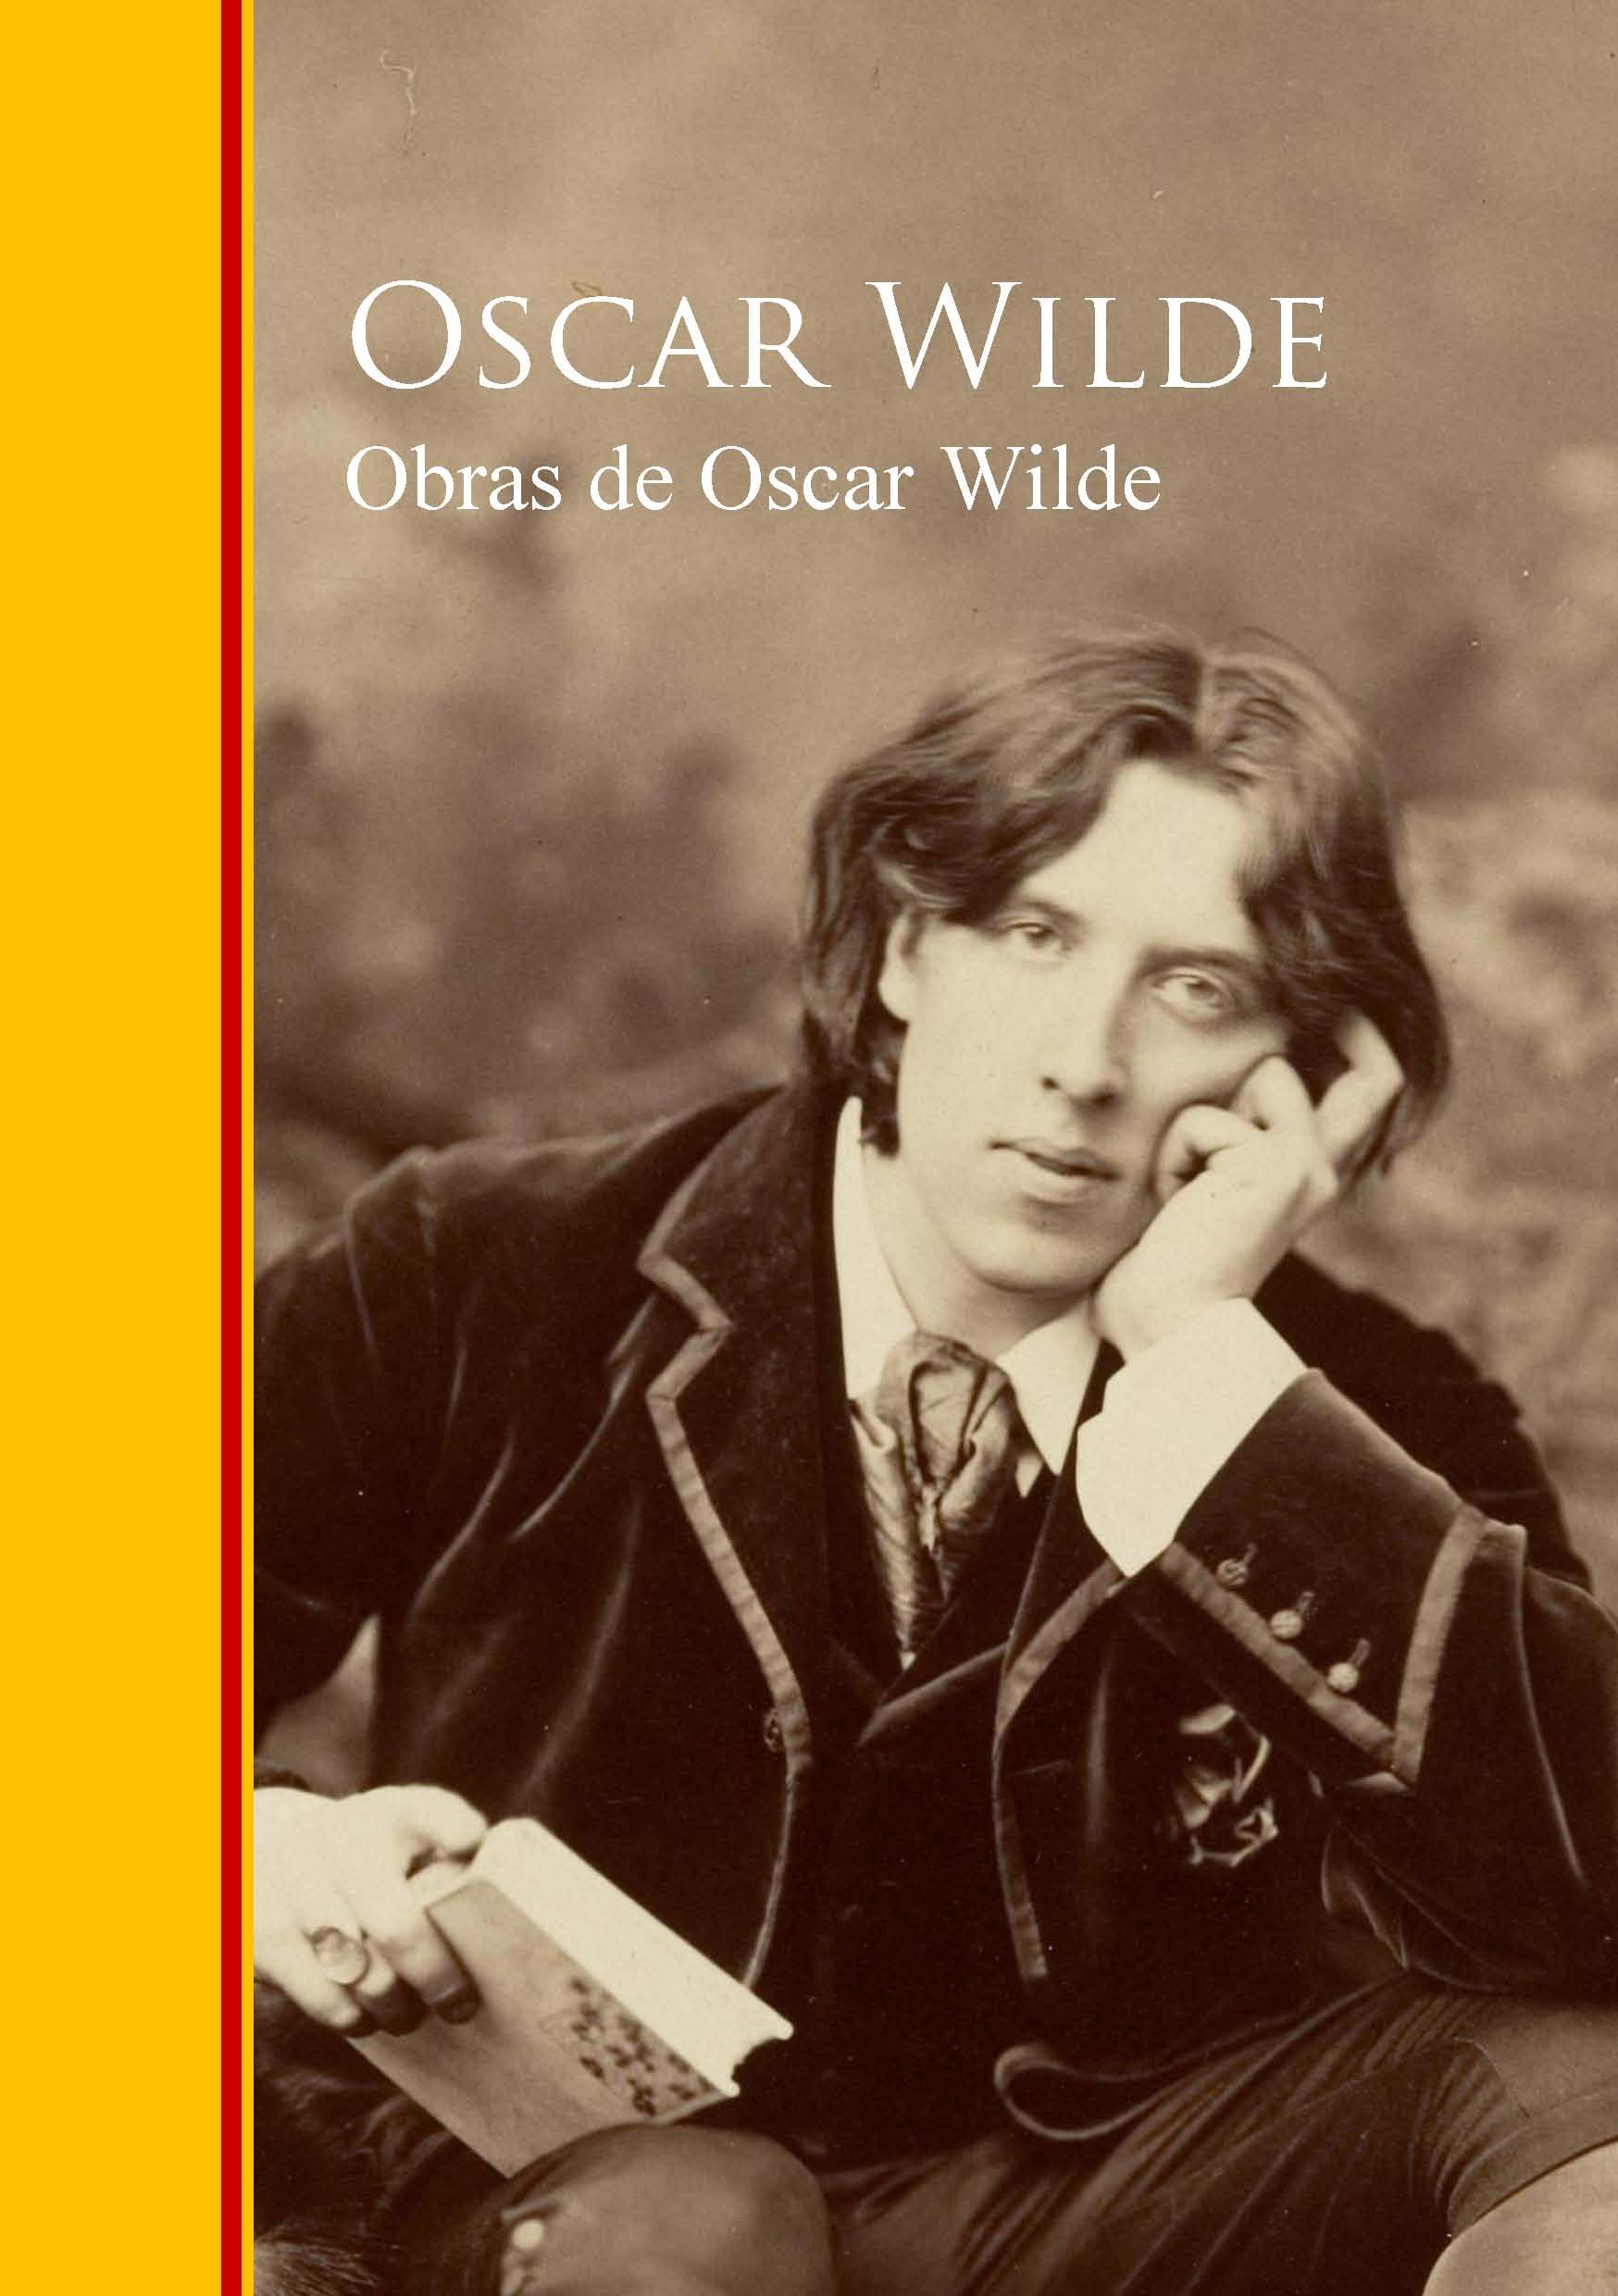 Coleccion Libros Epub Obras Coleccion De Oscar Wilde Ebook Oscar Wilde